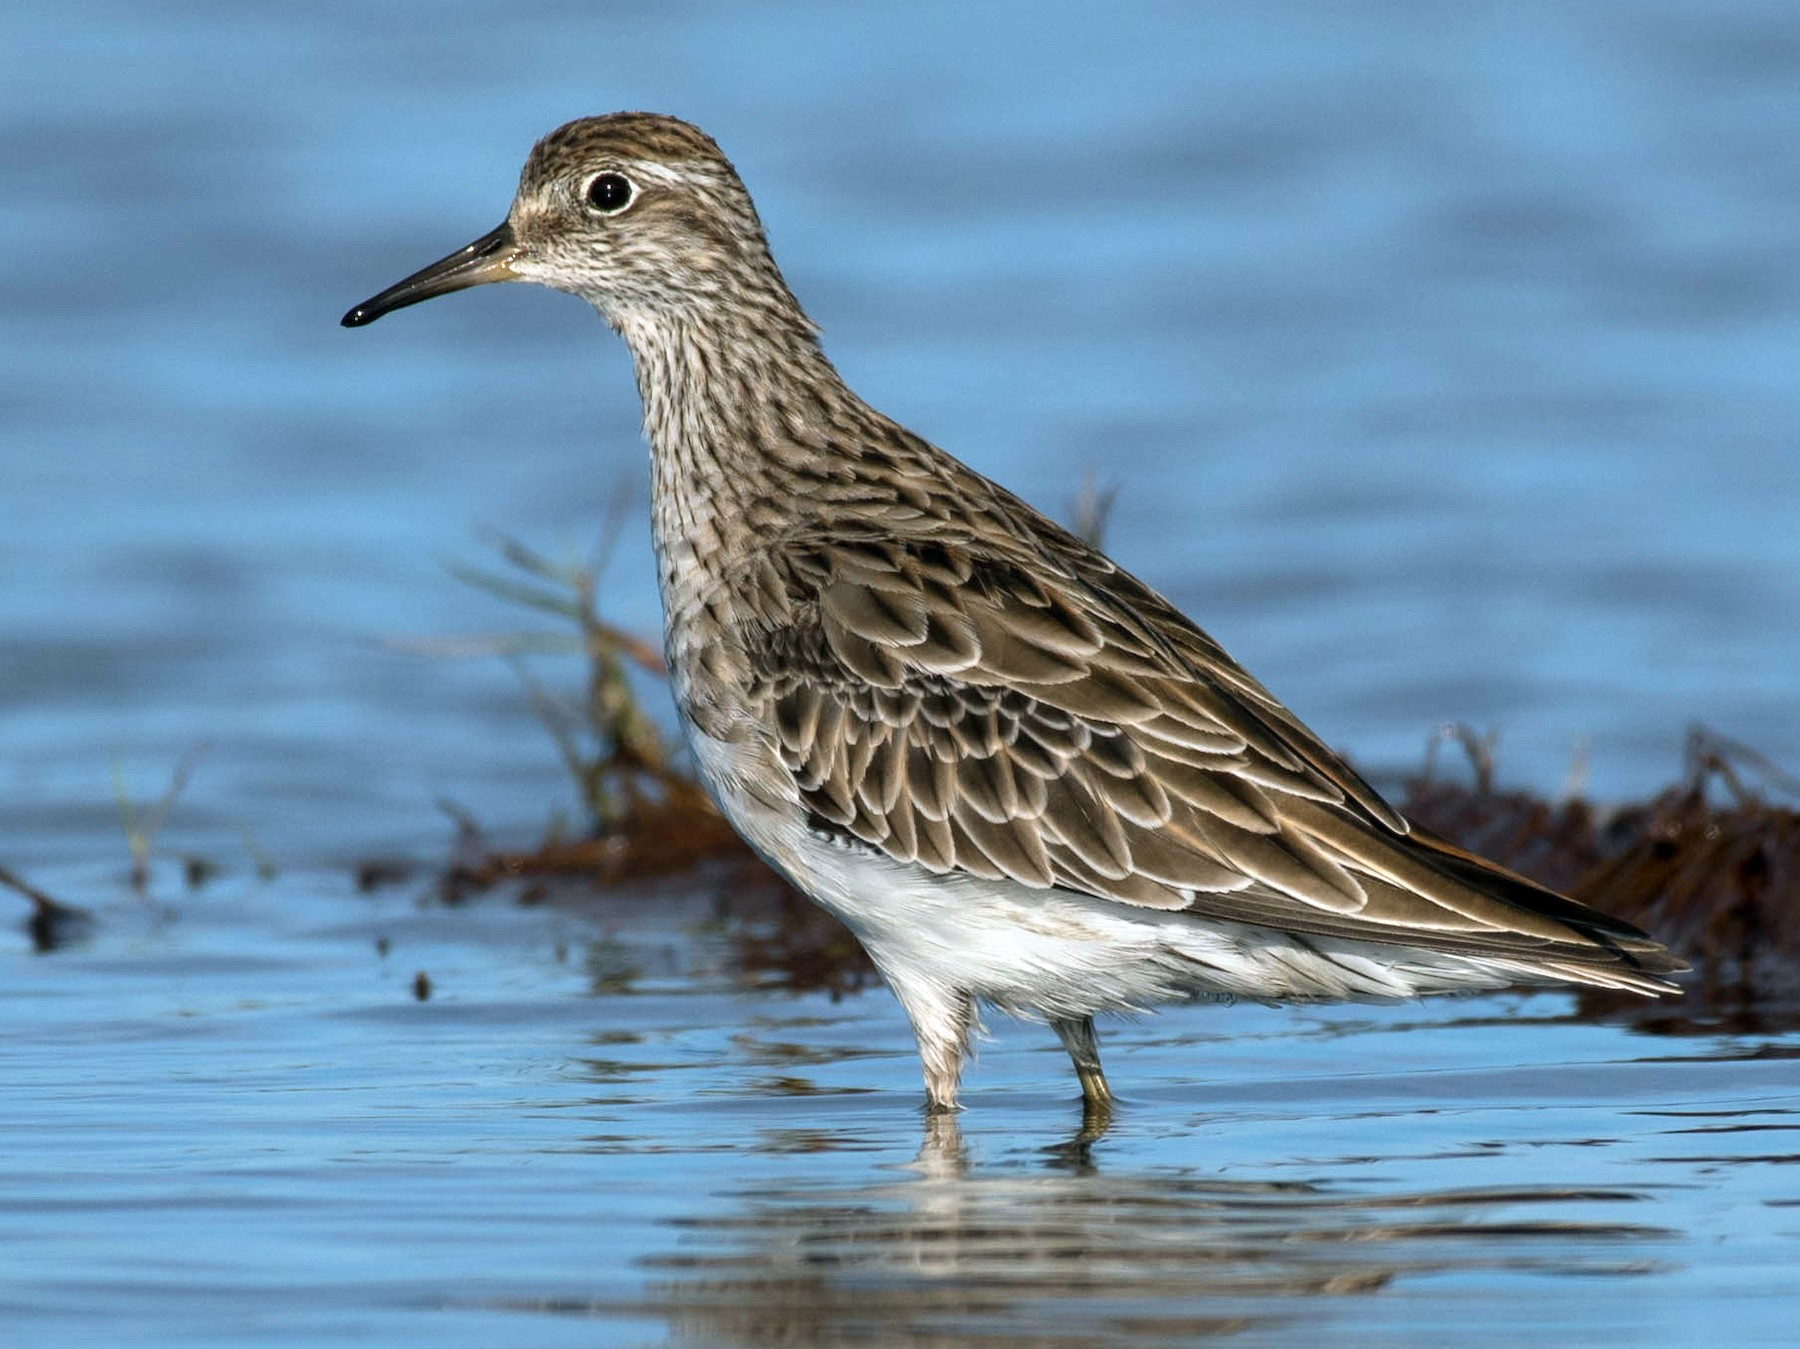 Sharp-tailed Sandpiper - Terence Alexander